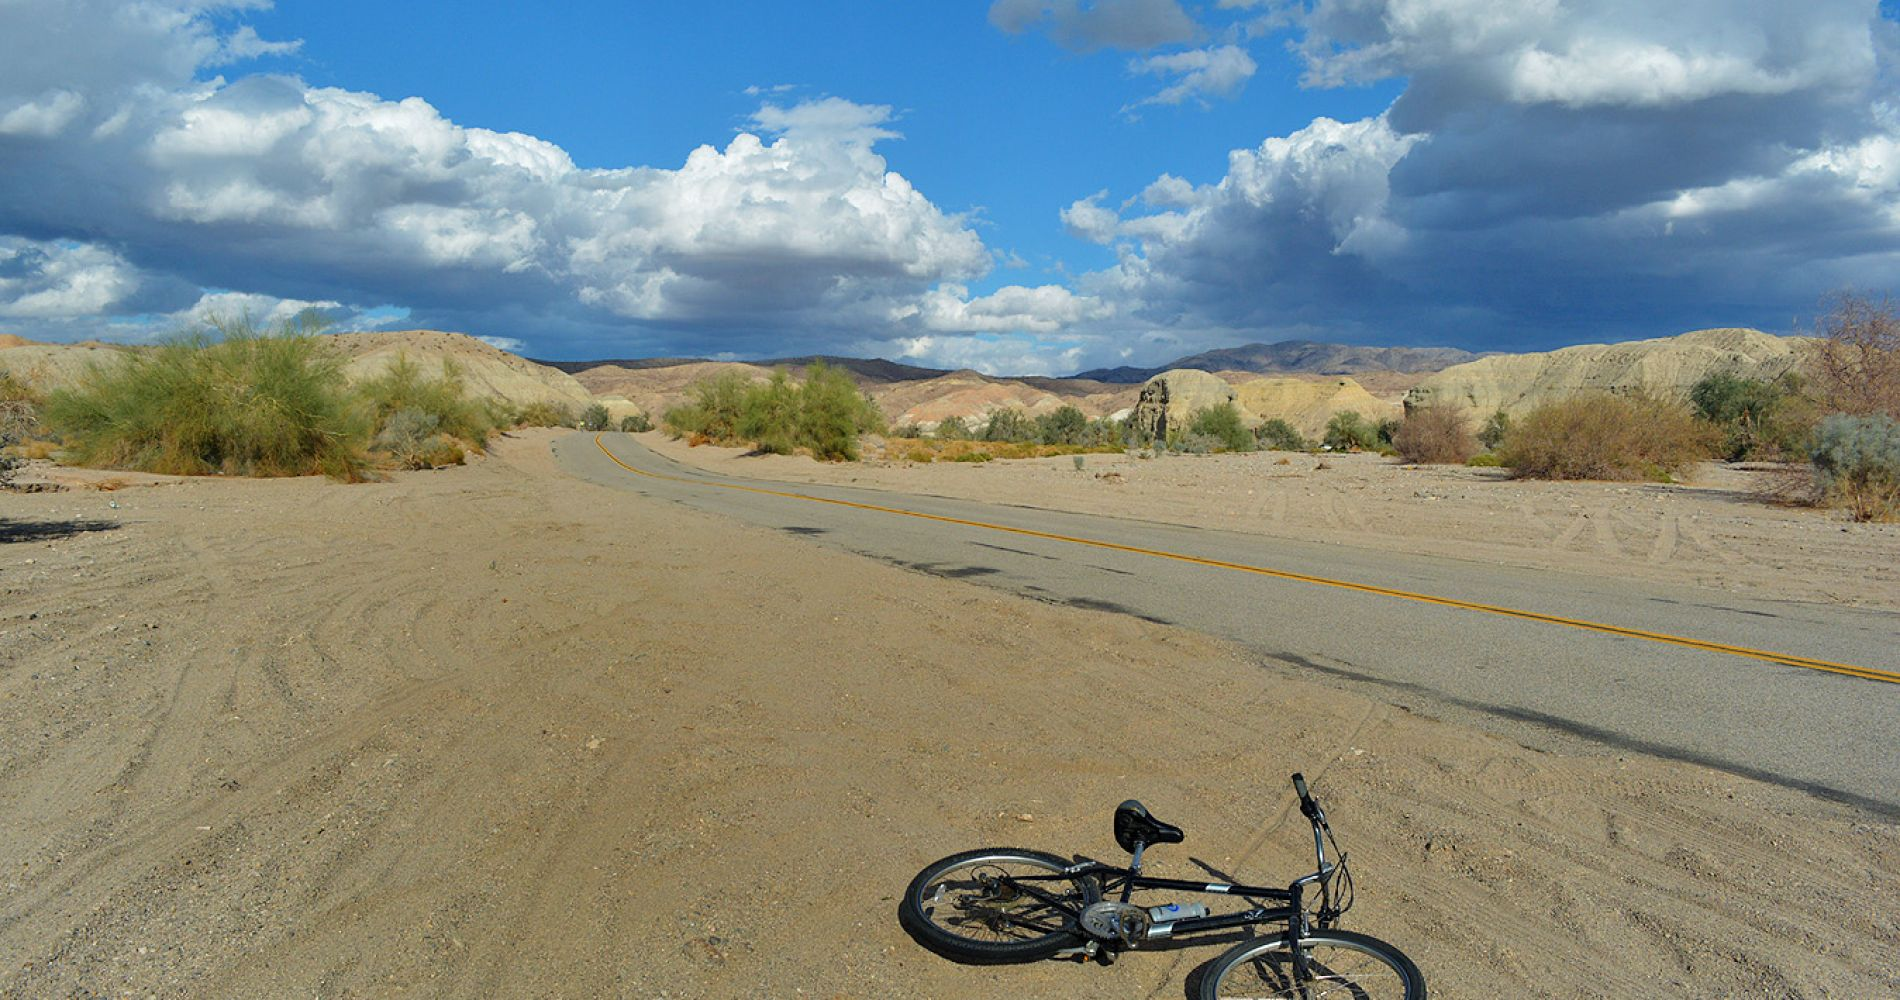 Indian Canyons Bike and Hike in Palm Springs